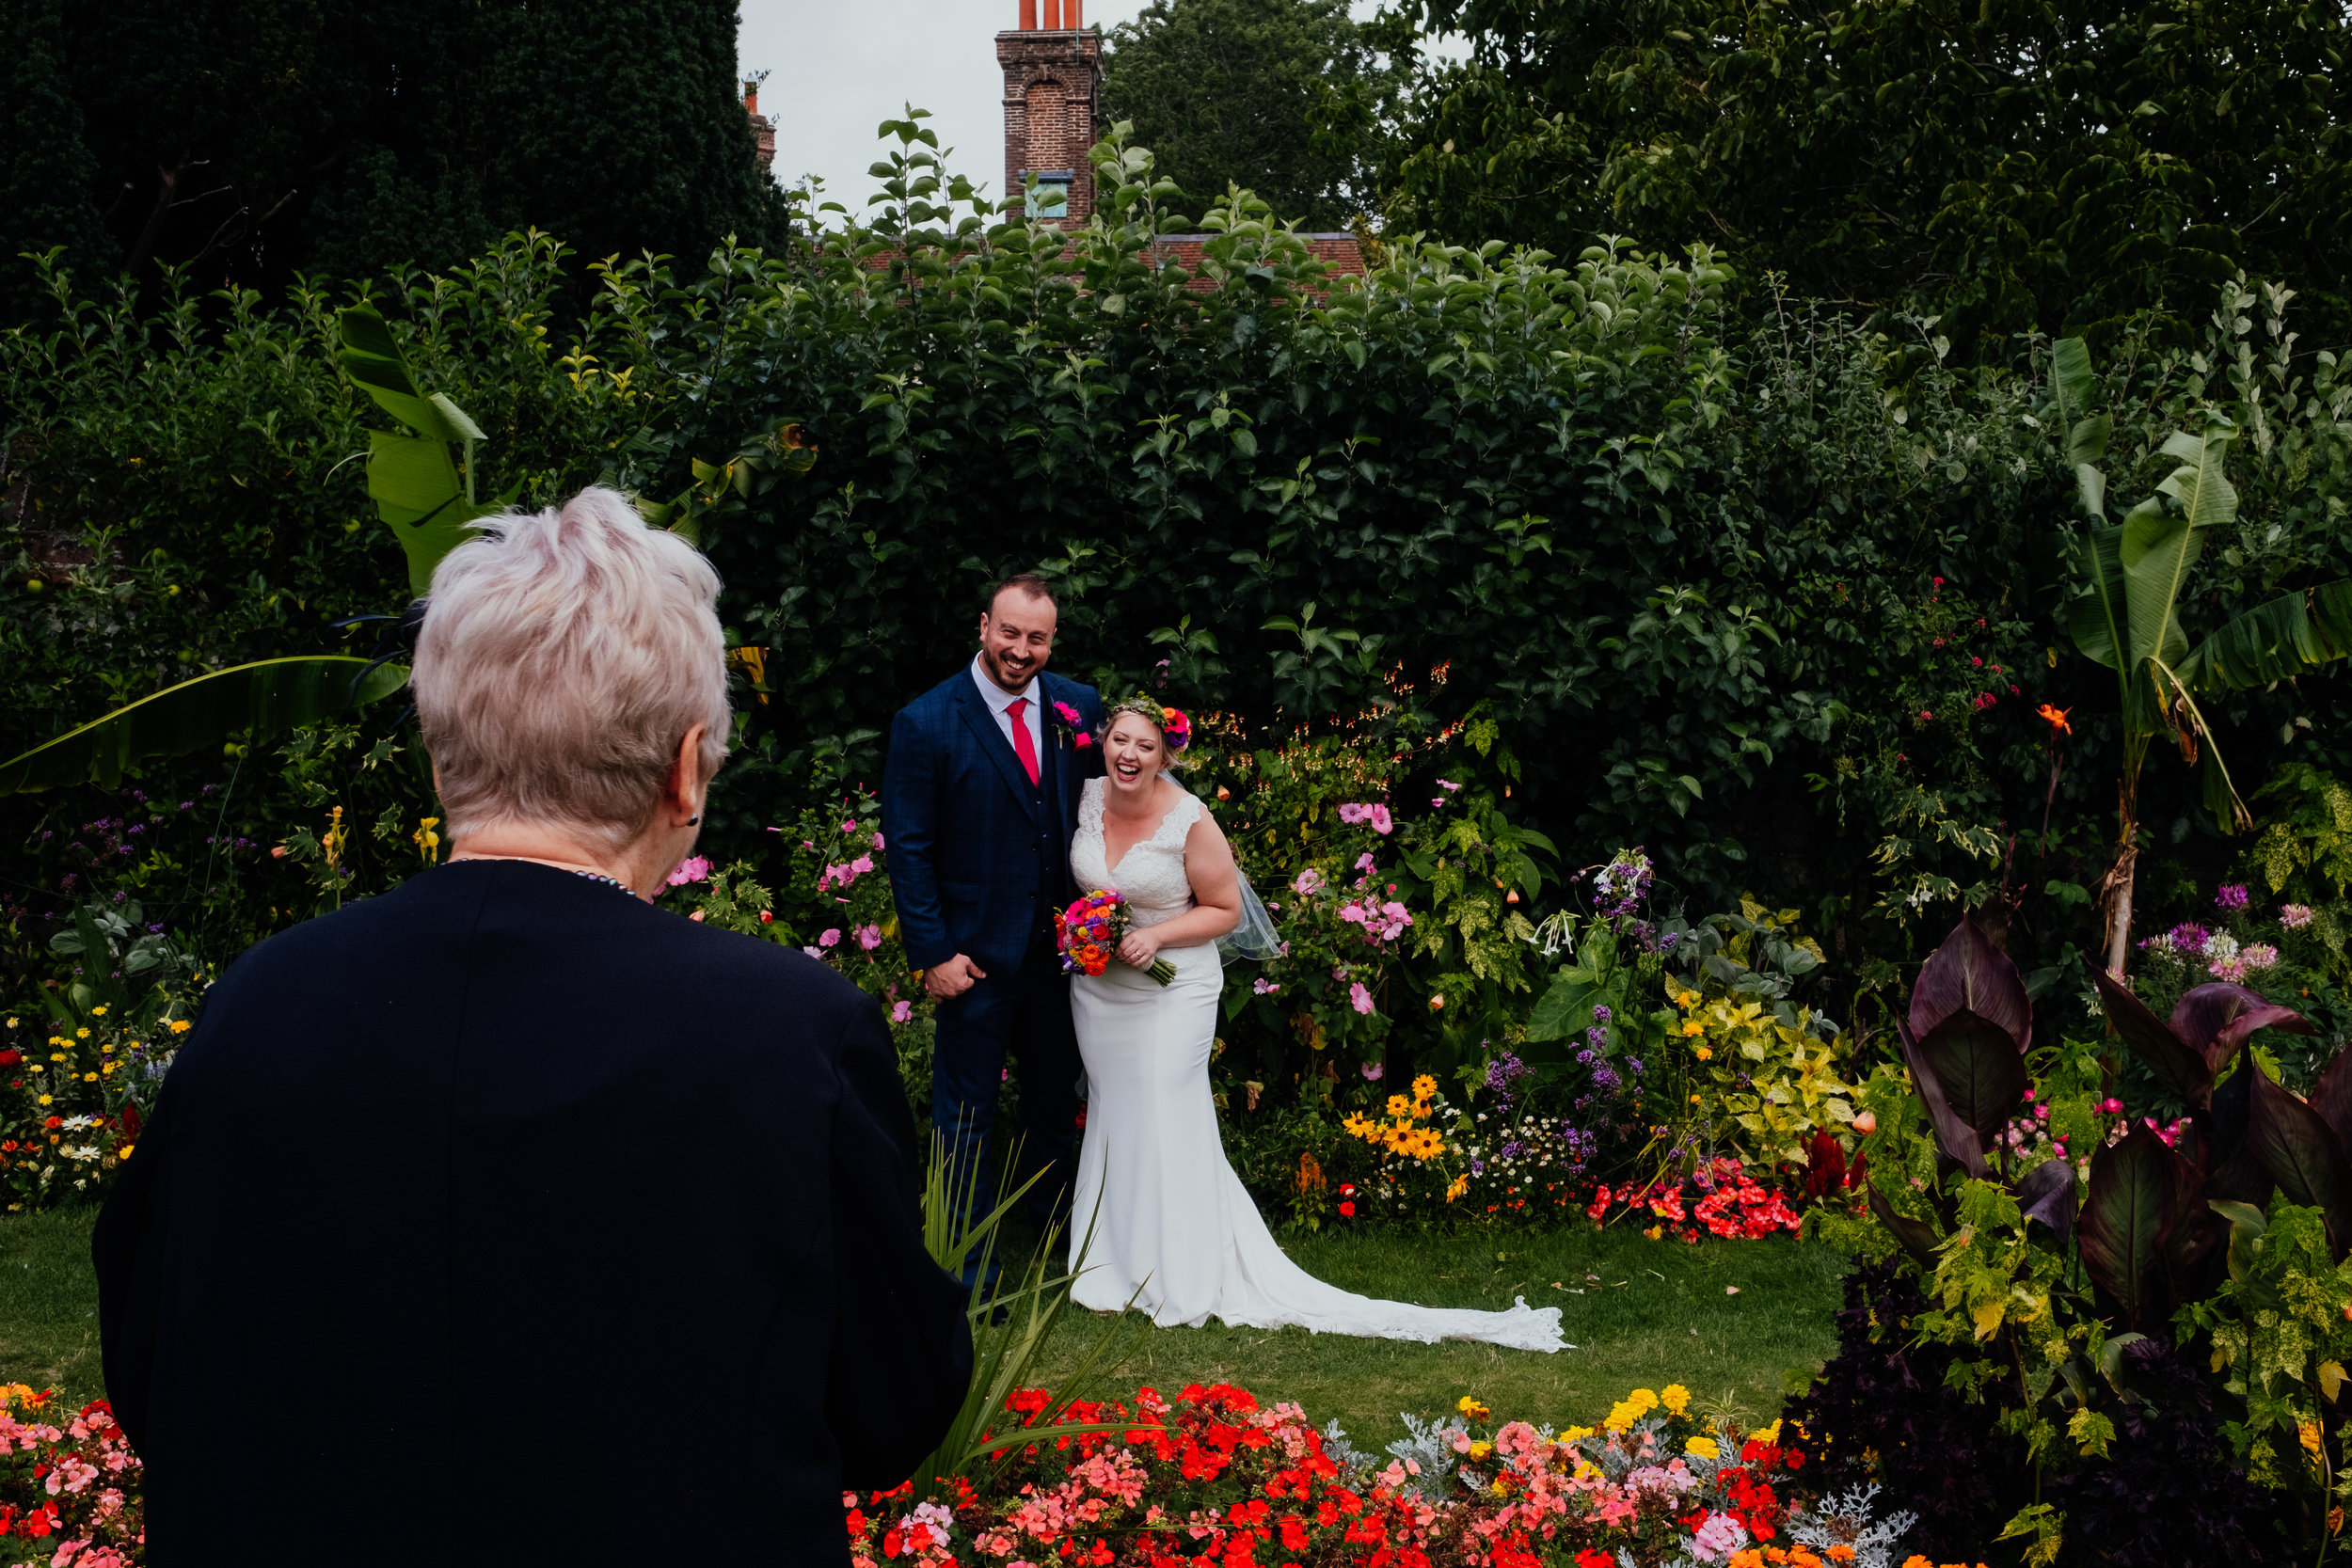 Bride and groom laugh as family take photographs of them